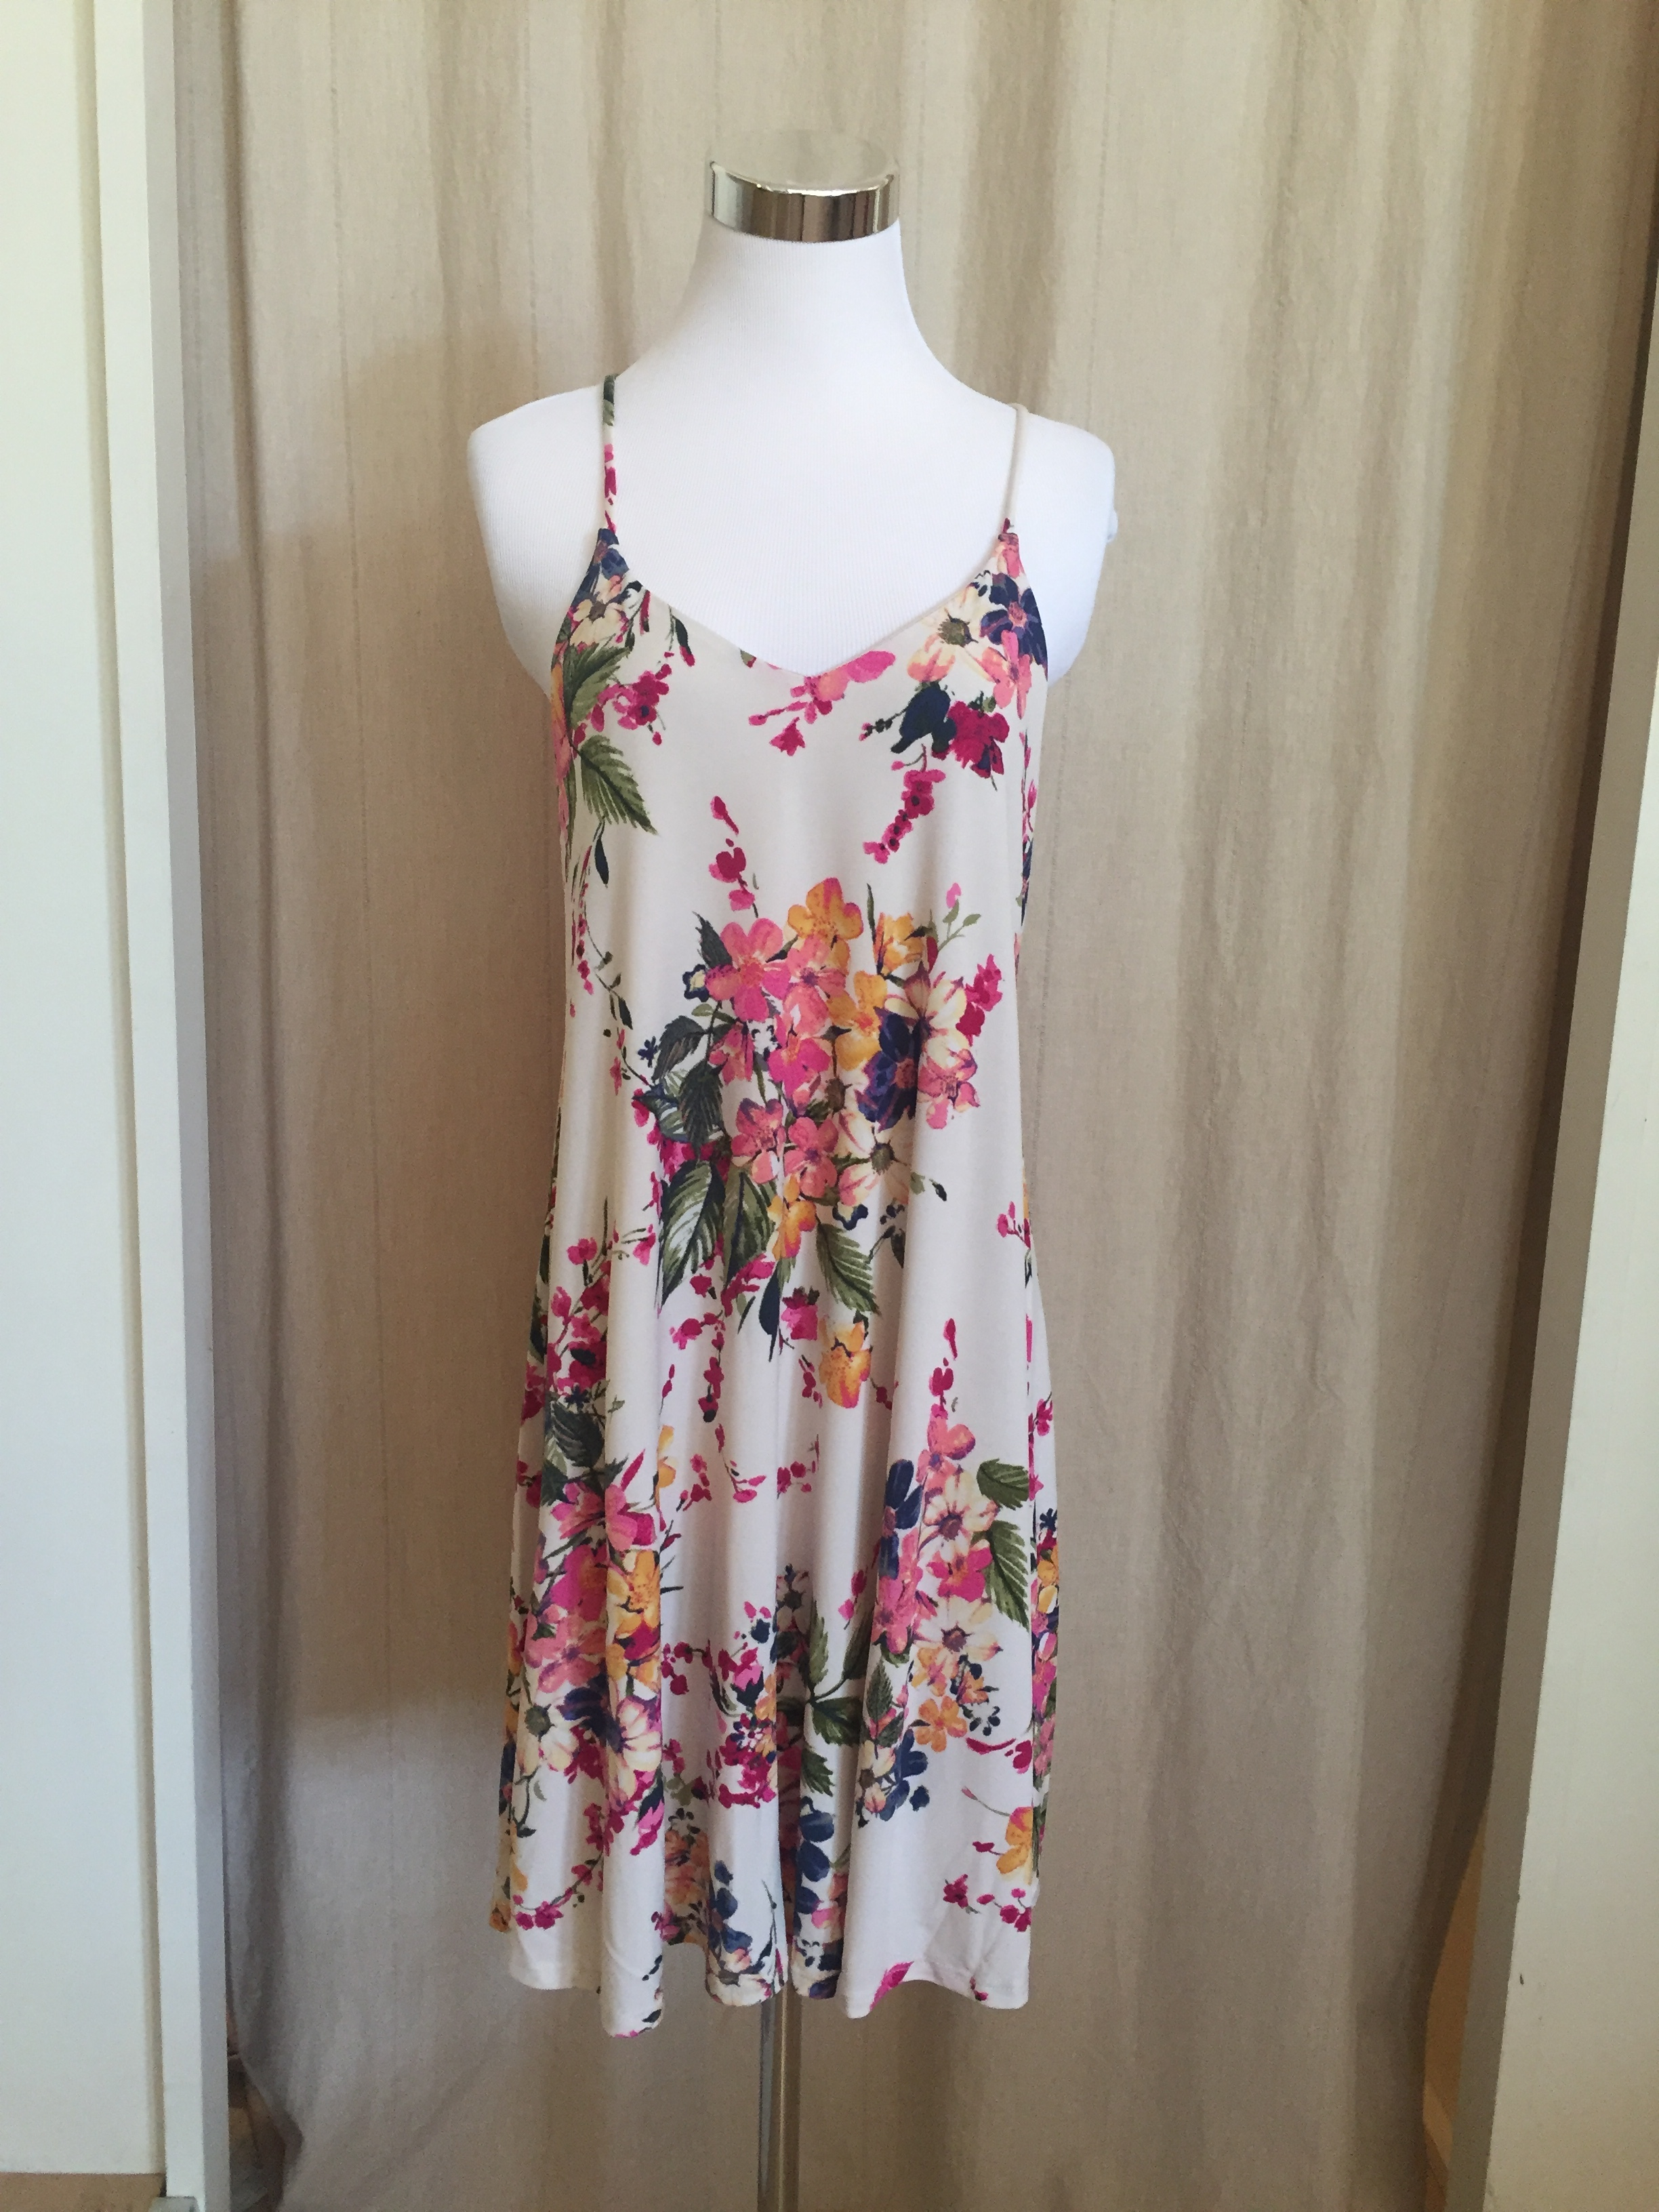 Cream Floral Strappy Dress, $38